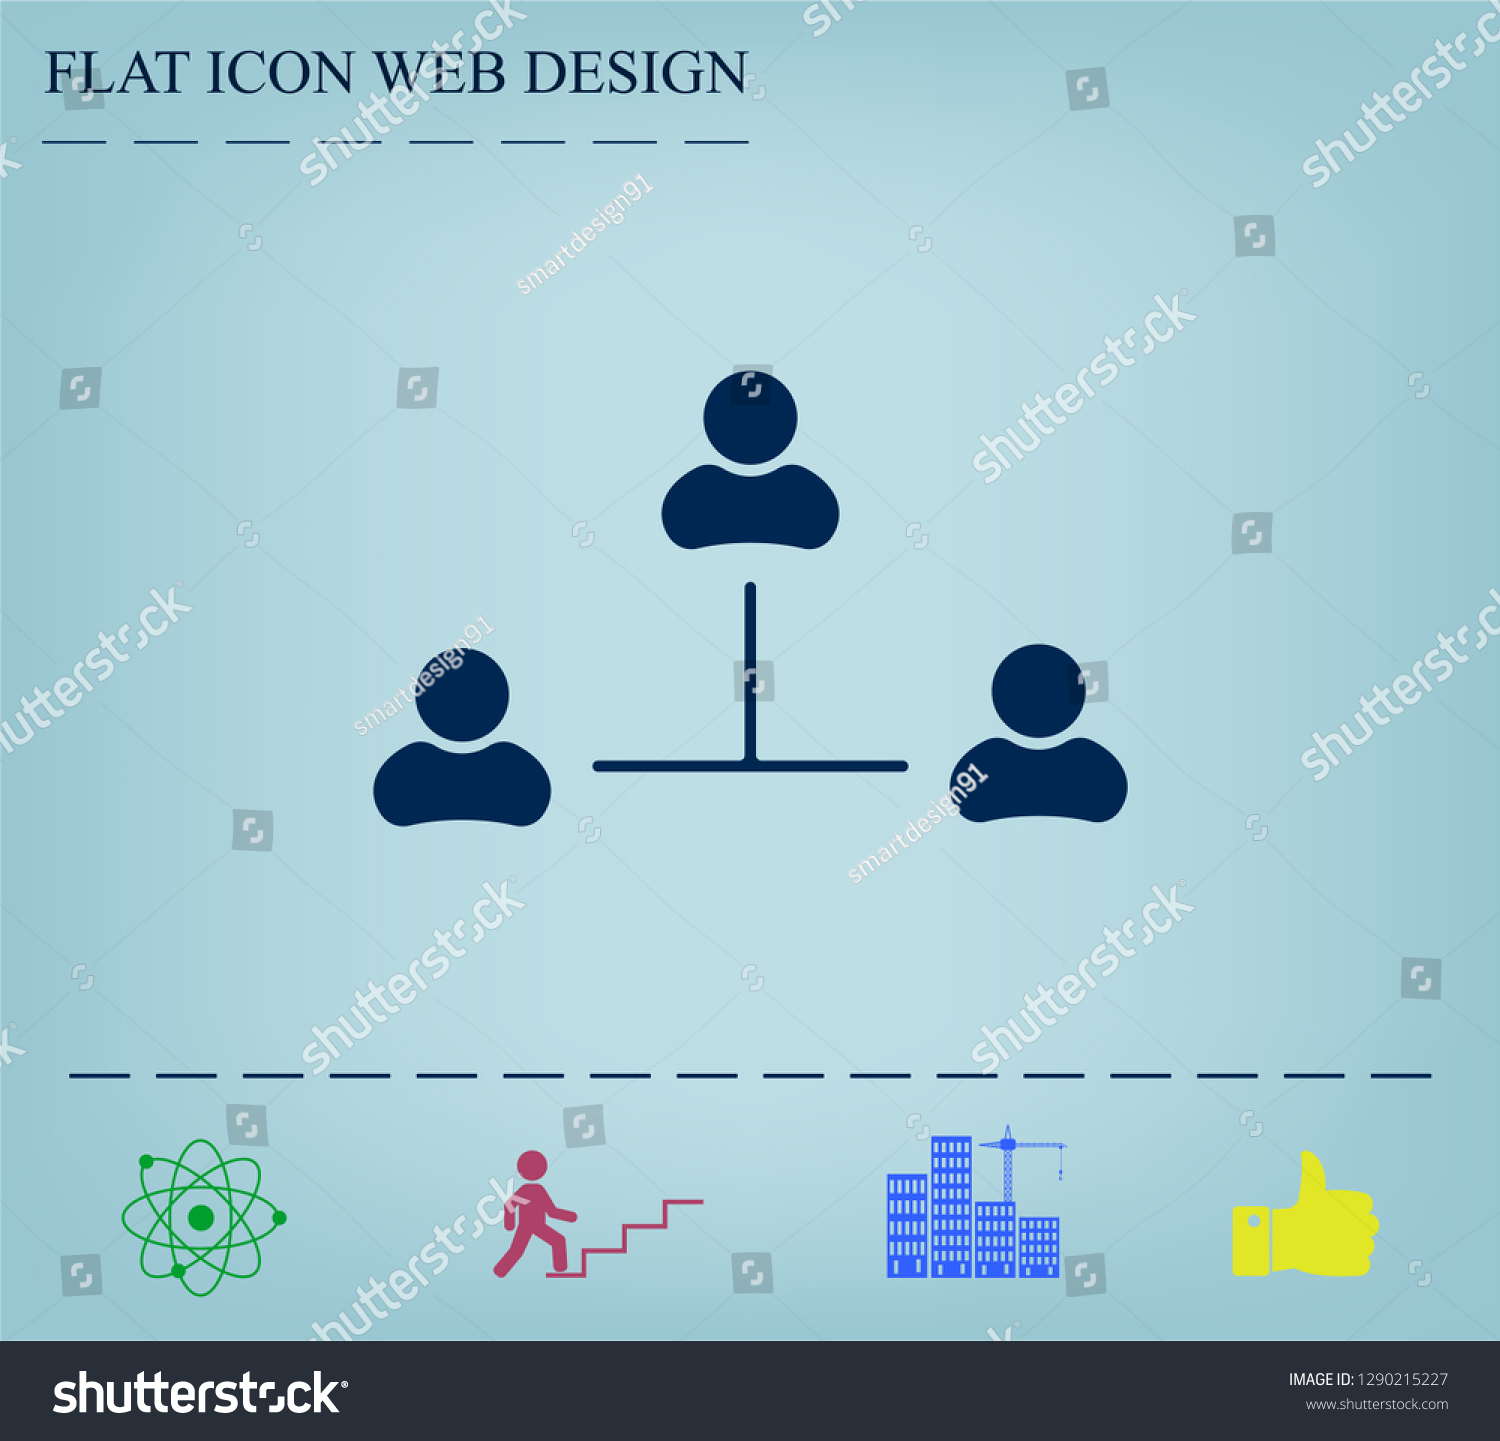 Three People Connected Network Symbol Download Stock Vector